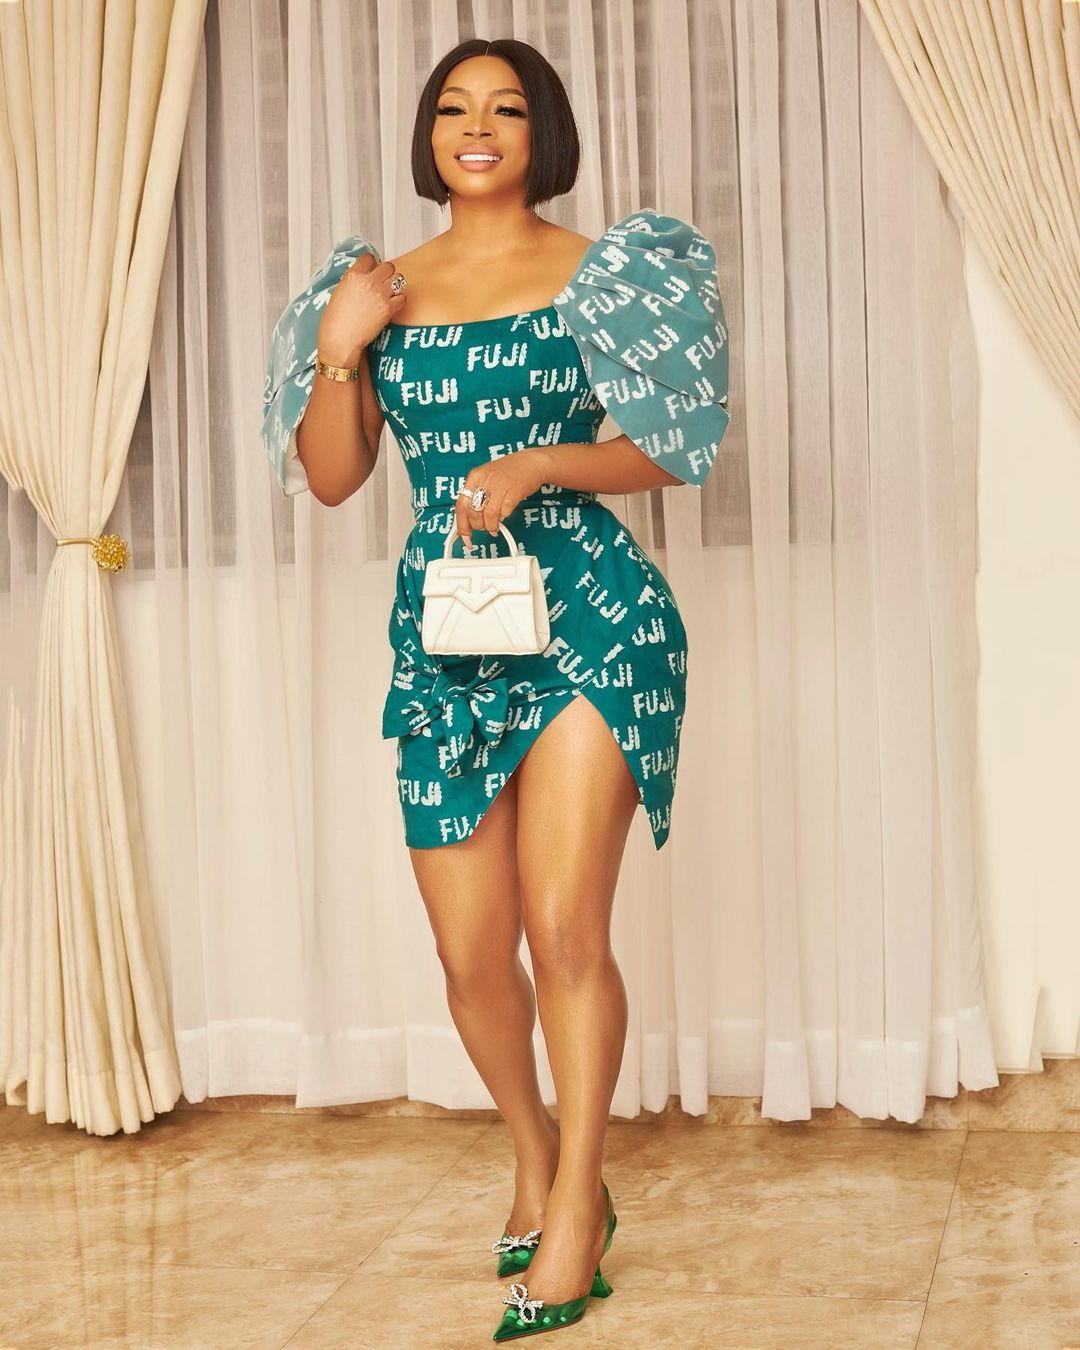 Toke Makinwa Stylish Pose And Outfit Is Sure To Turn Heads